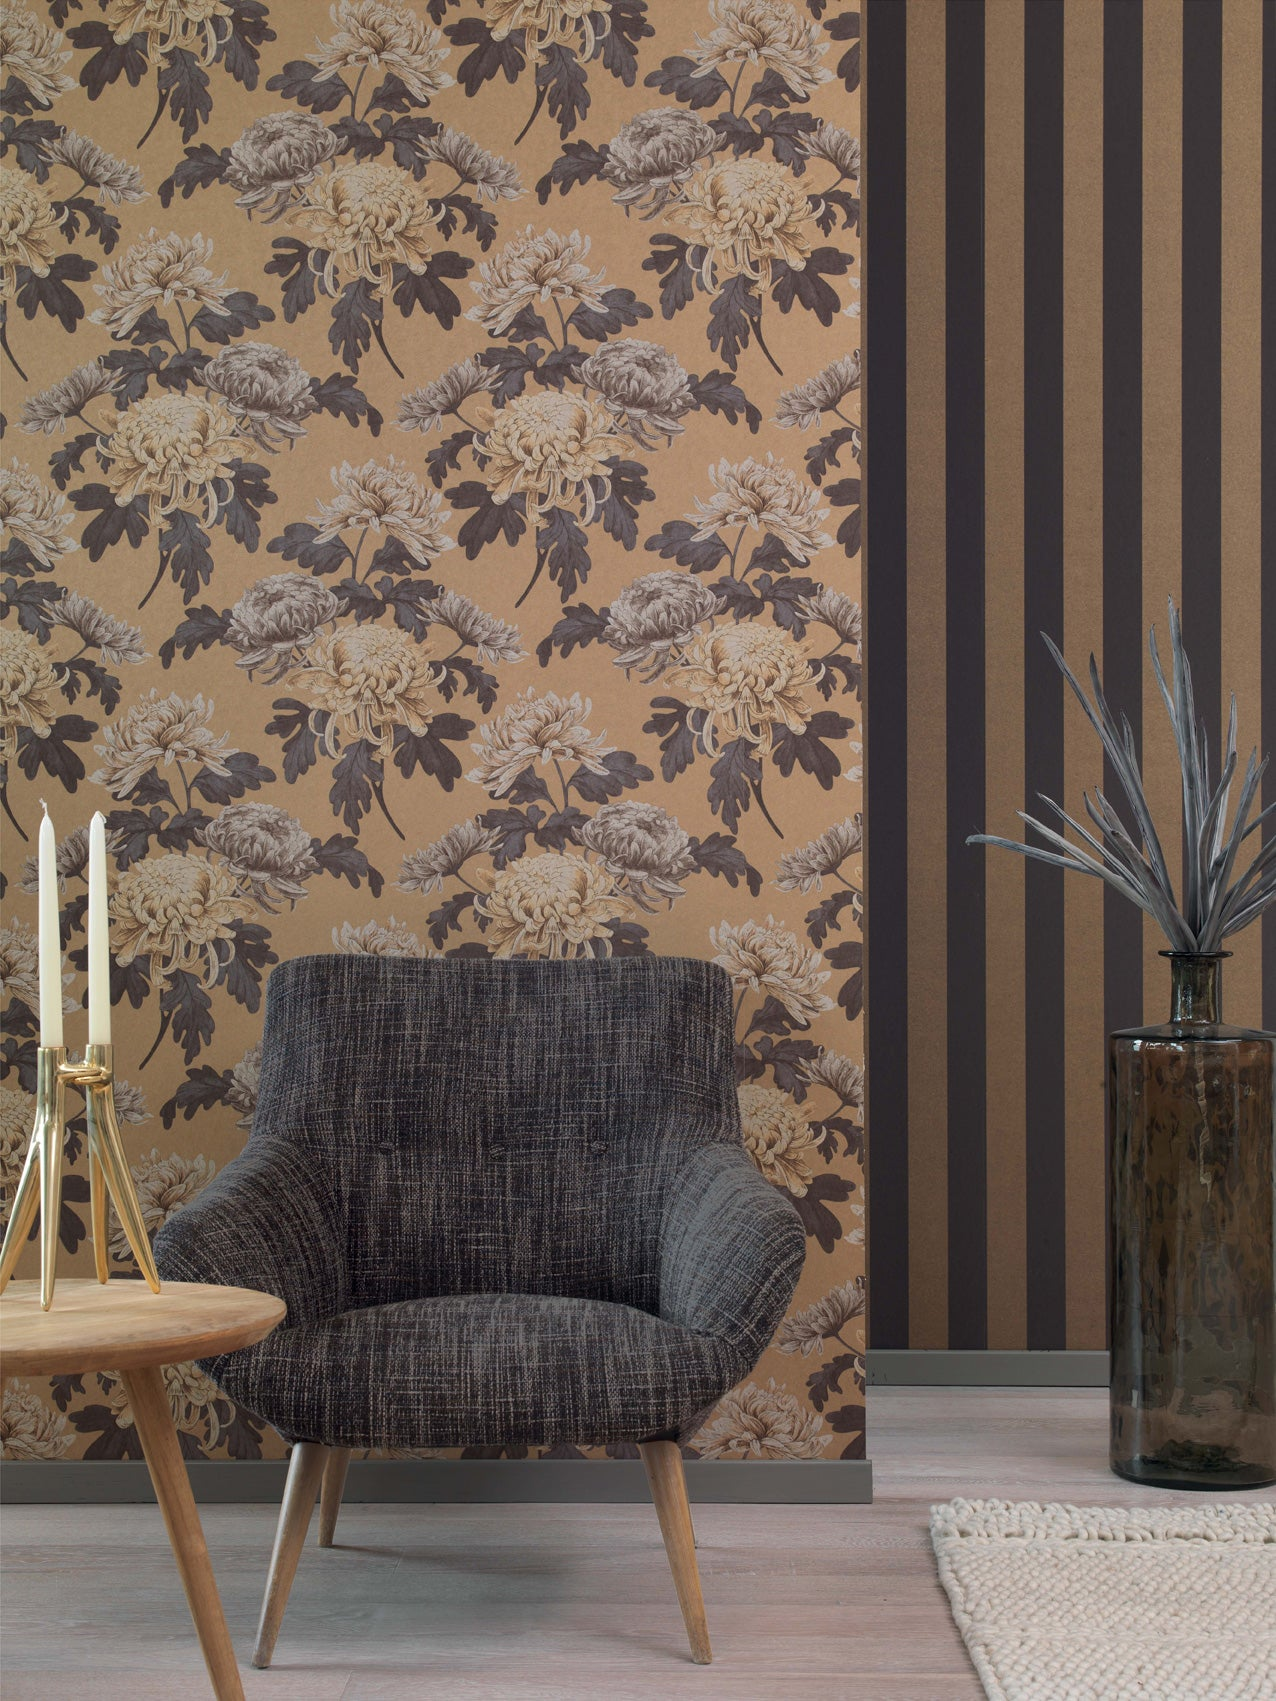 Living Room Feature Wall Decor: Contemporary Wallpaper Ideas For Living Room Feature Walls